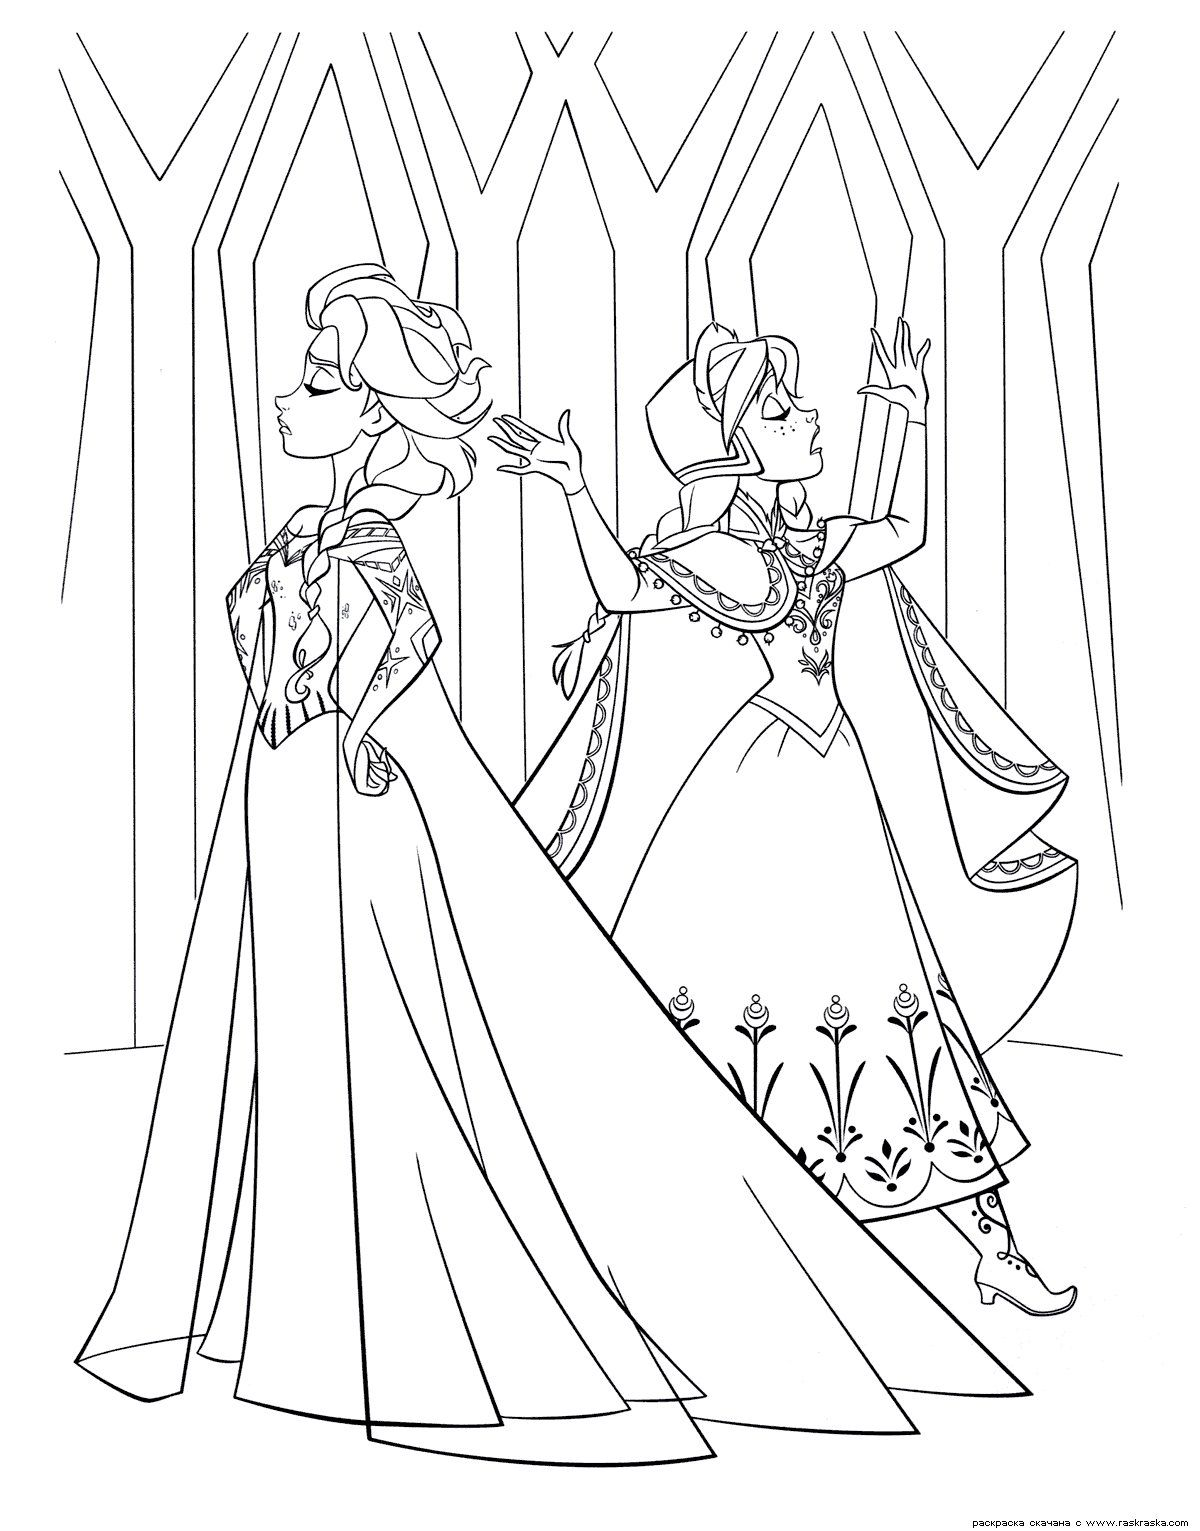 Printable coloring pages violetta - 35 Free Disney S Frozen Coloring Pages Printable Free Printable Coloring Pages For Kids Coloring Books